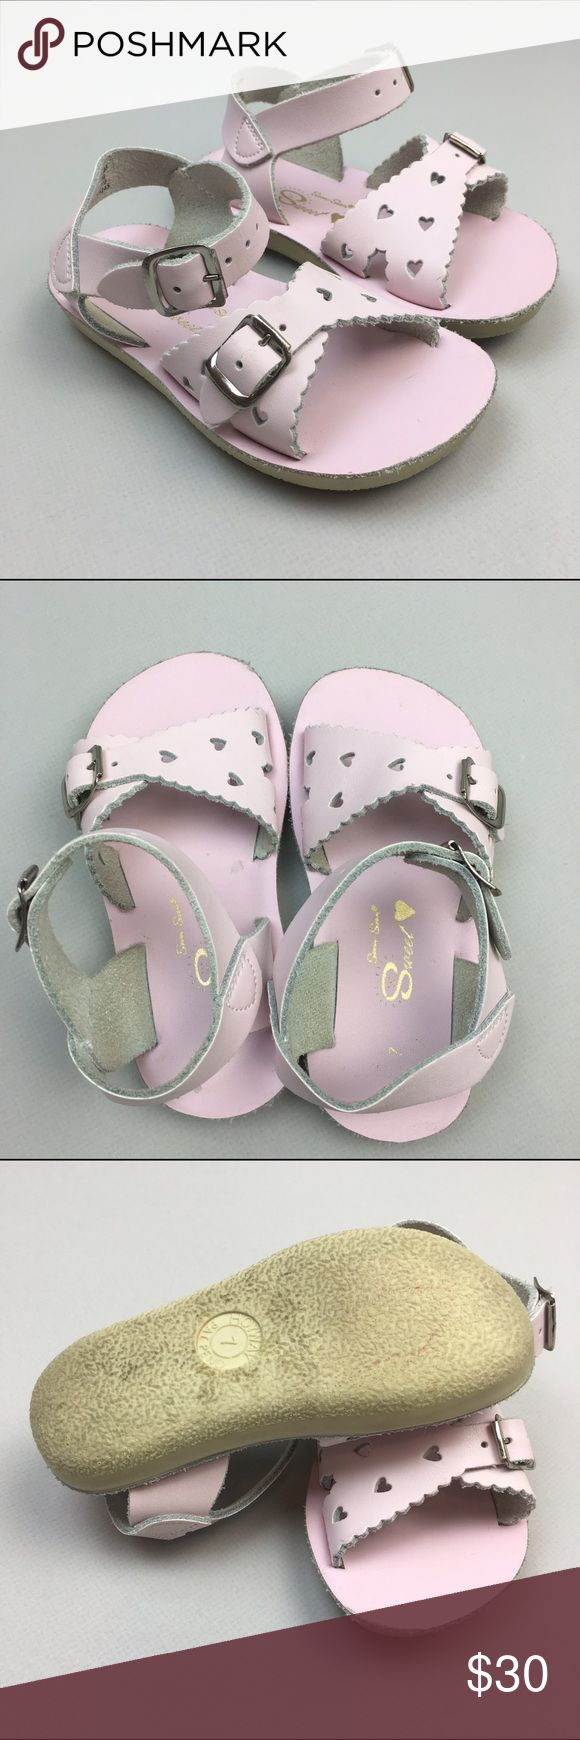 Salt water sweethearts sandals Great condition Salt Water Sandals by Hoy Shoes Sandals & Flip Flops